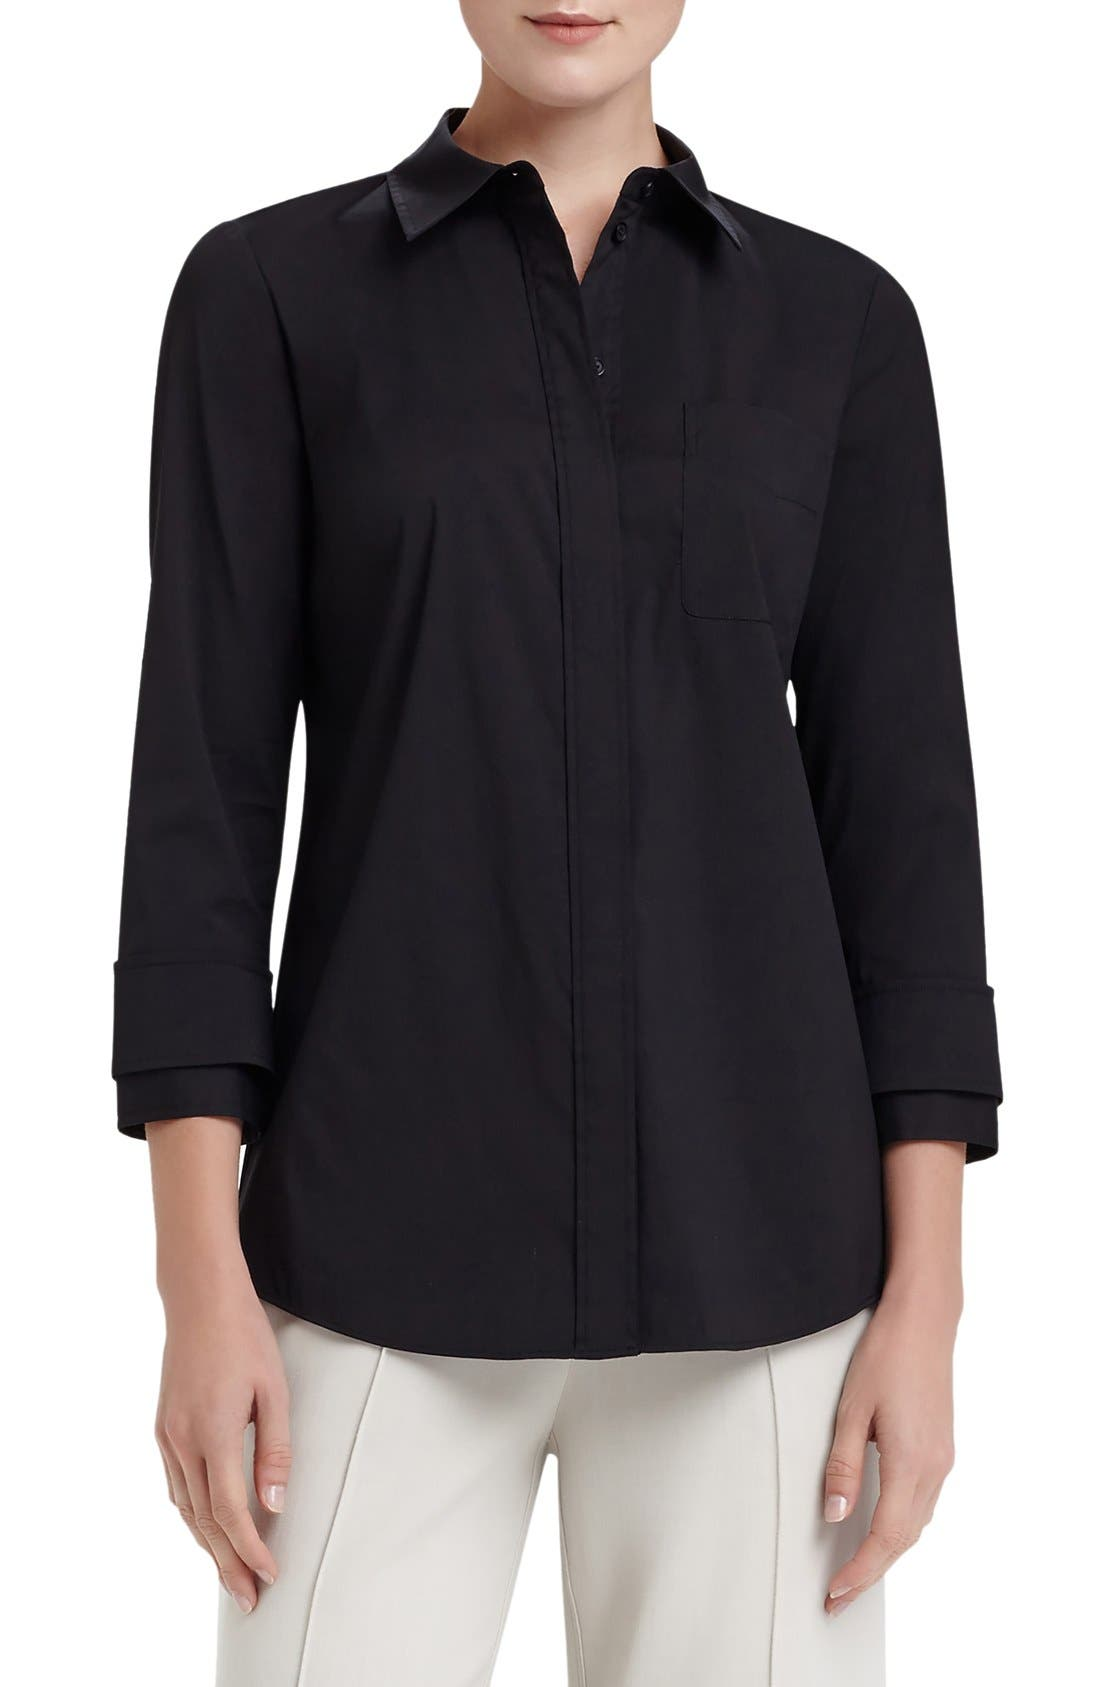 Main Image - Lafayette 148 New York 'Emerson' Stretch Poplin Blouse